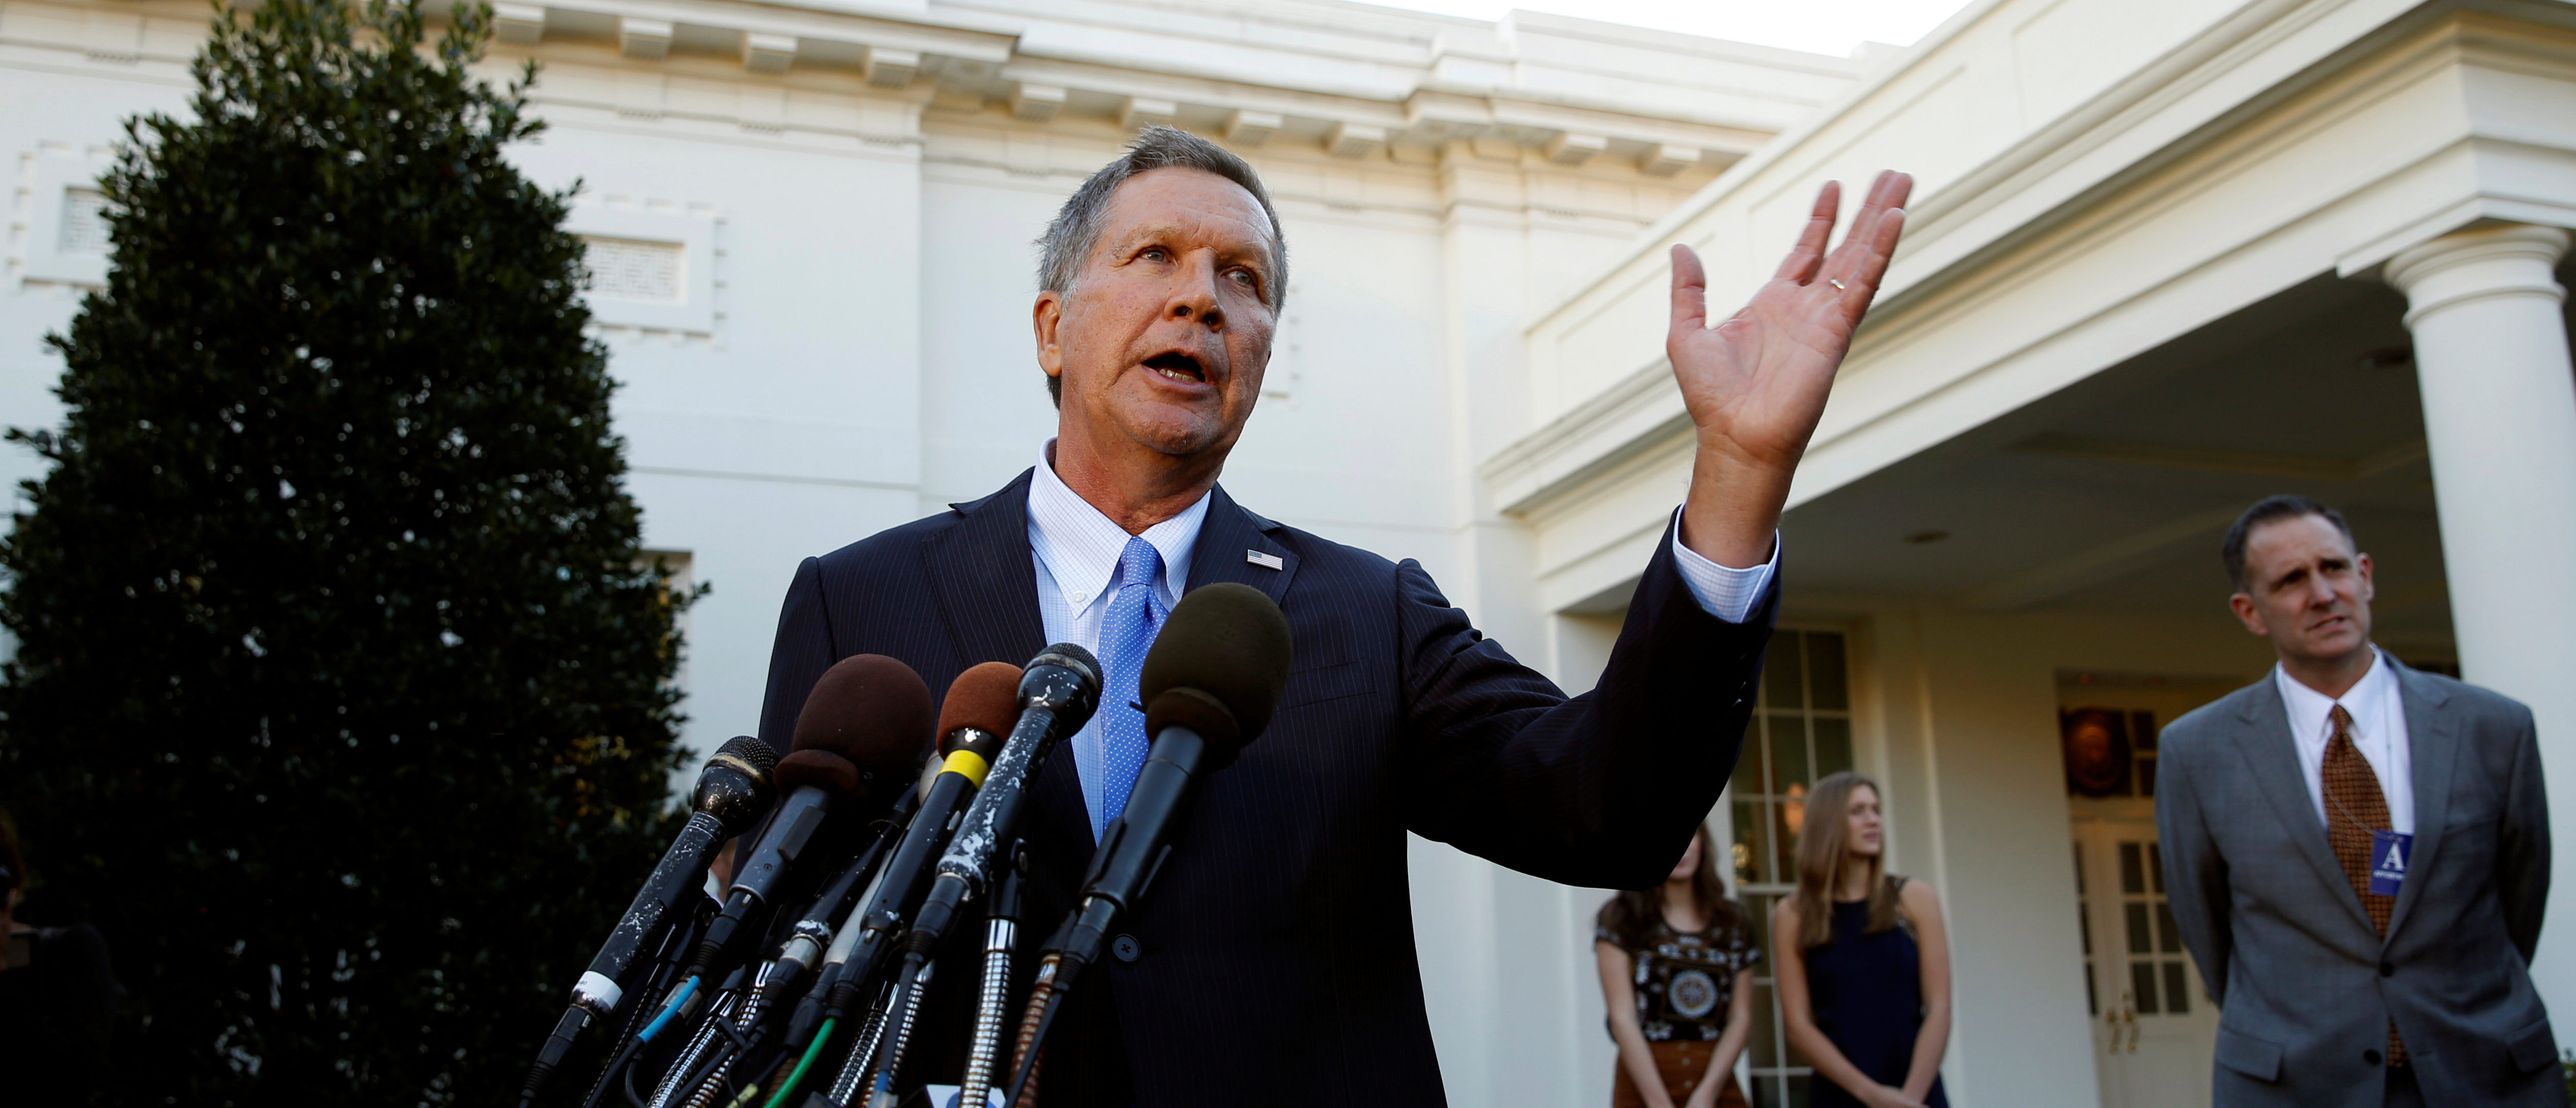 Ohio Governor and former presidential candidate John Kasich speaks to reporters after an event honoring the Cleveland Cavaliers, the 2016 NBA championship team, at the White House in Washington November 10, 2016. REUTERS/Kevin Lamarque - S1AEUMCAGUAB